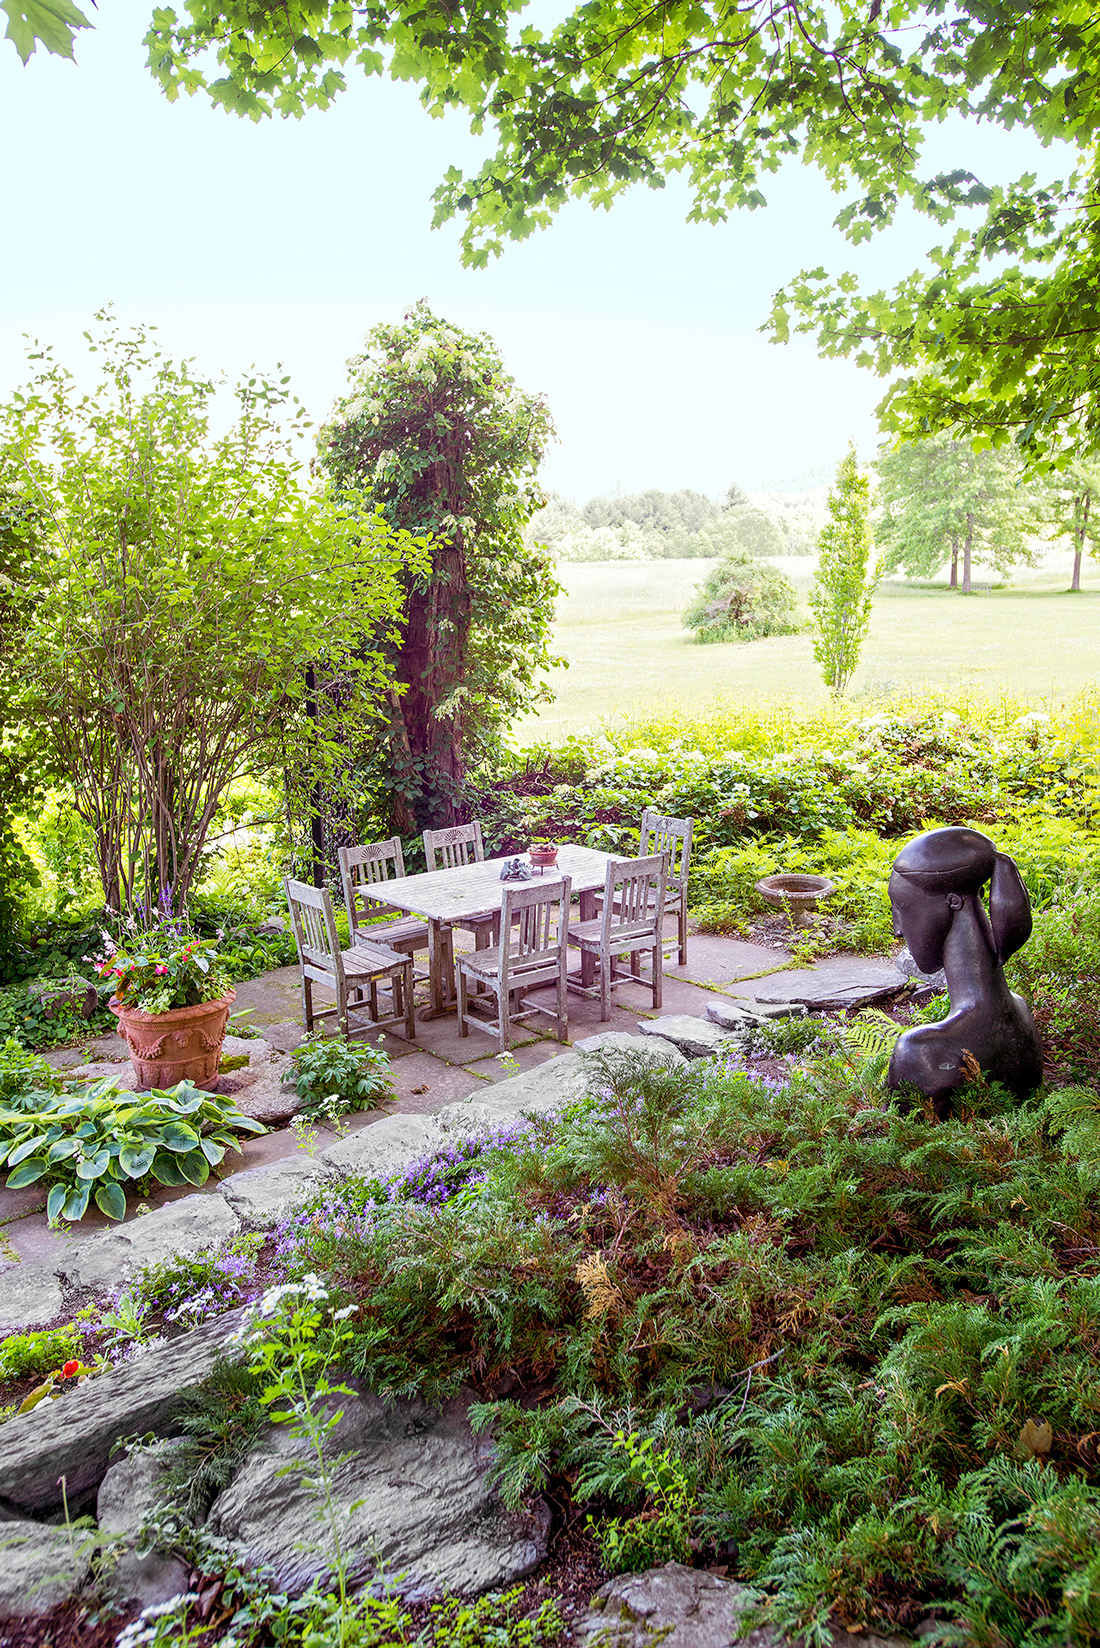 table and chairs surrounded by trees in garden